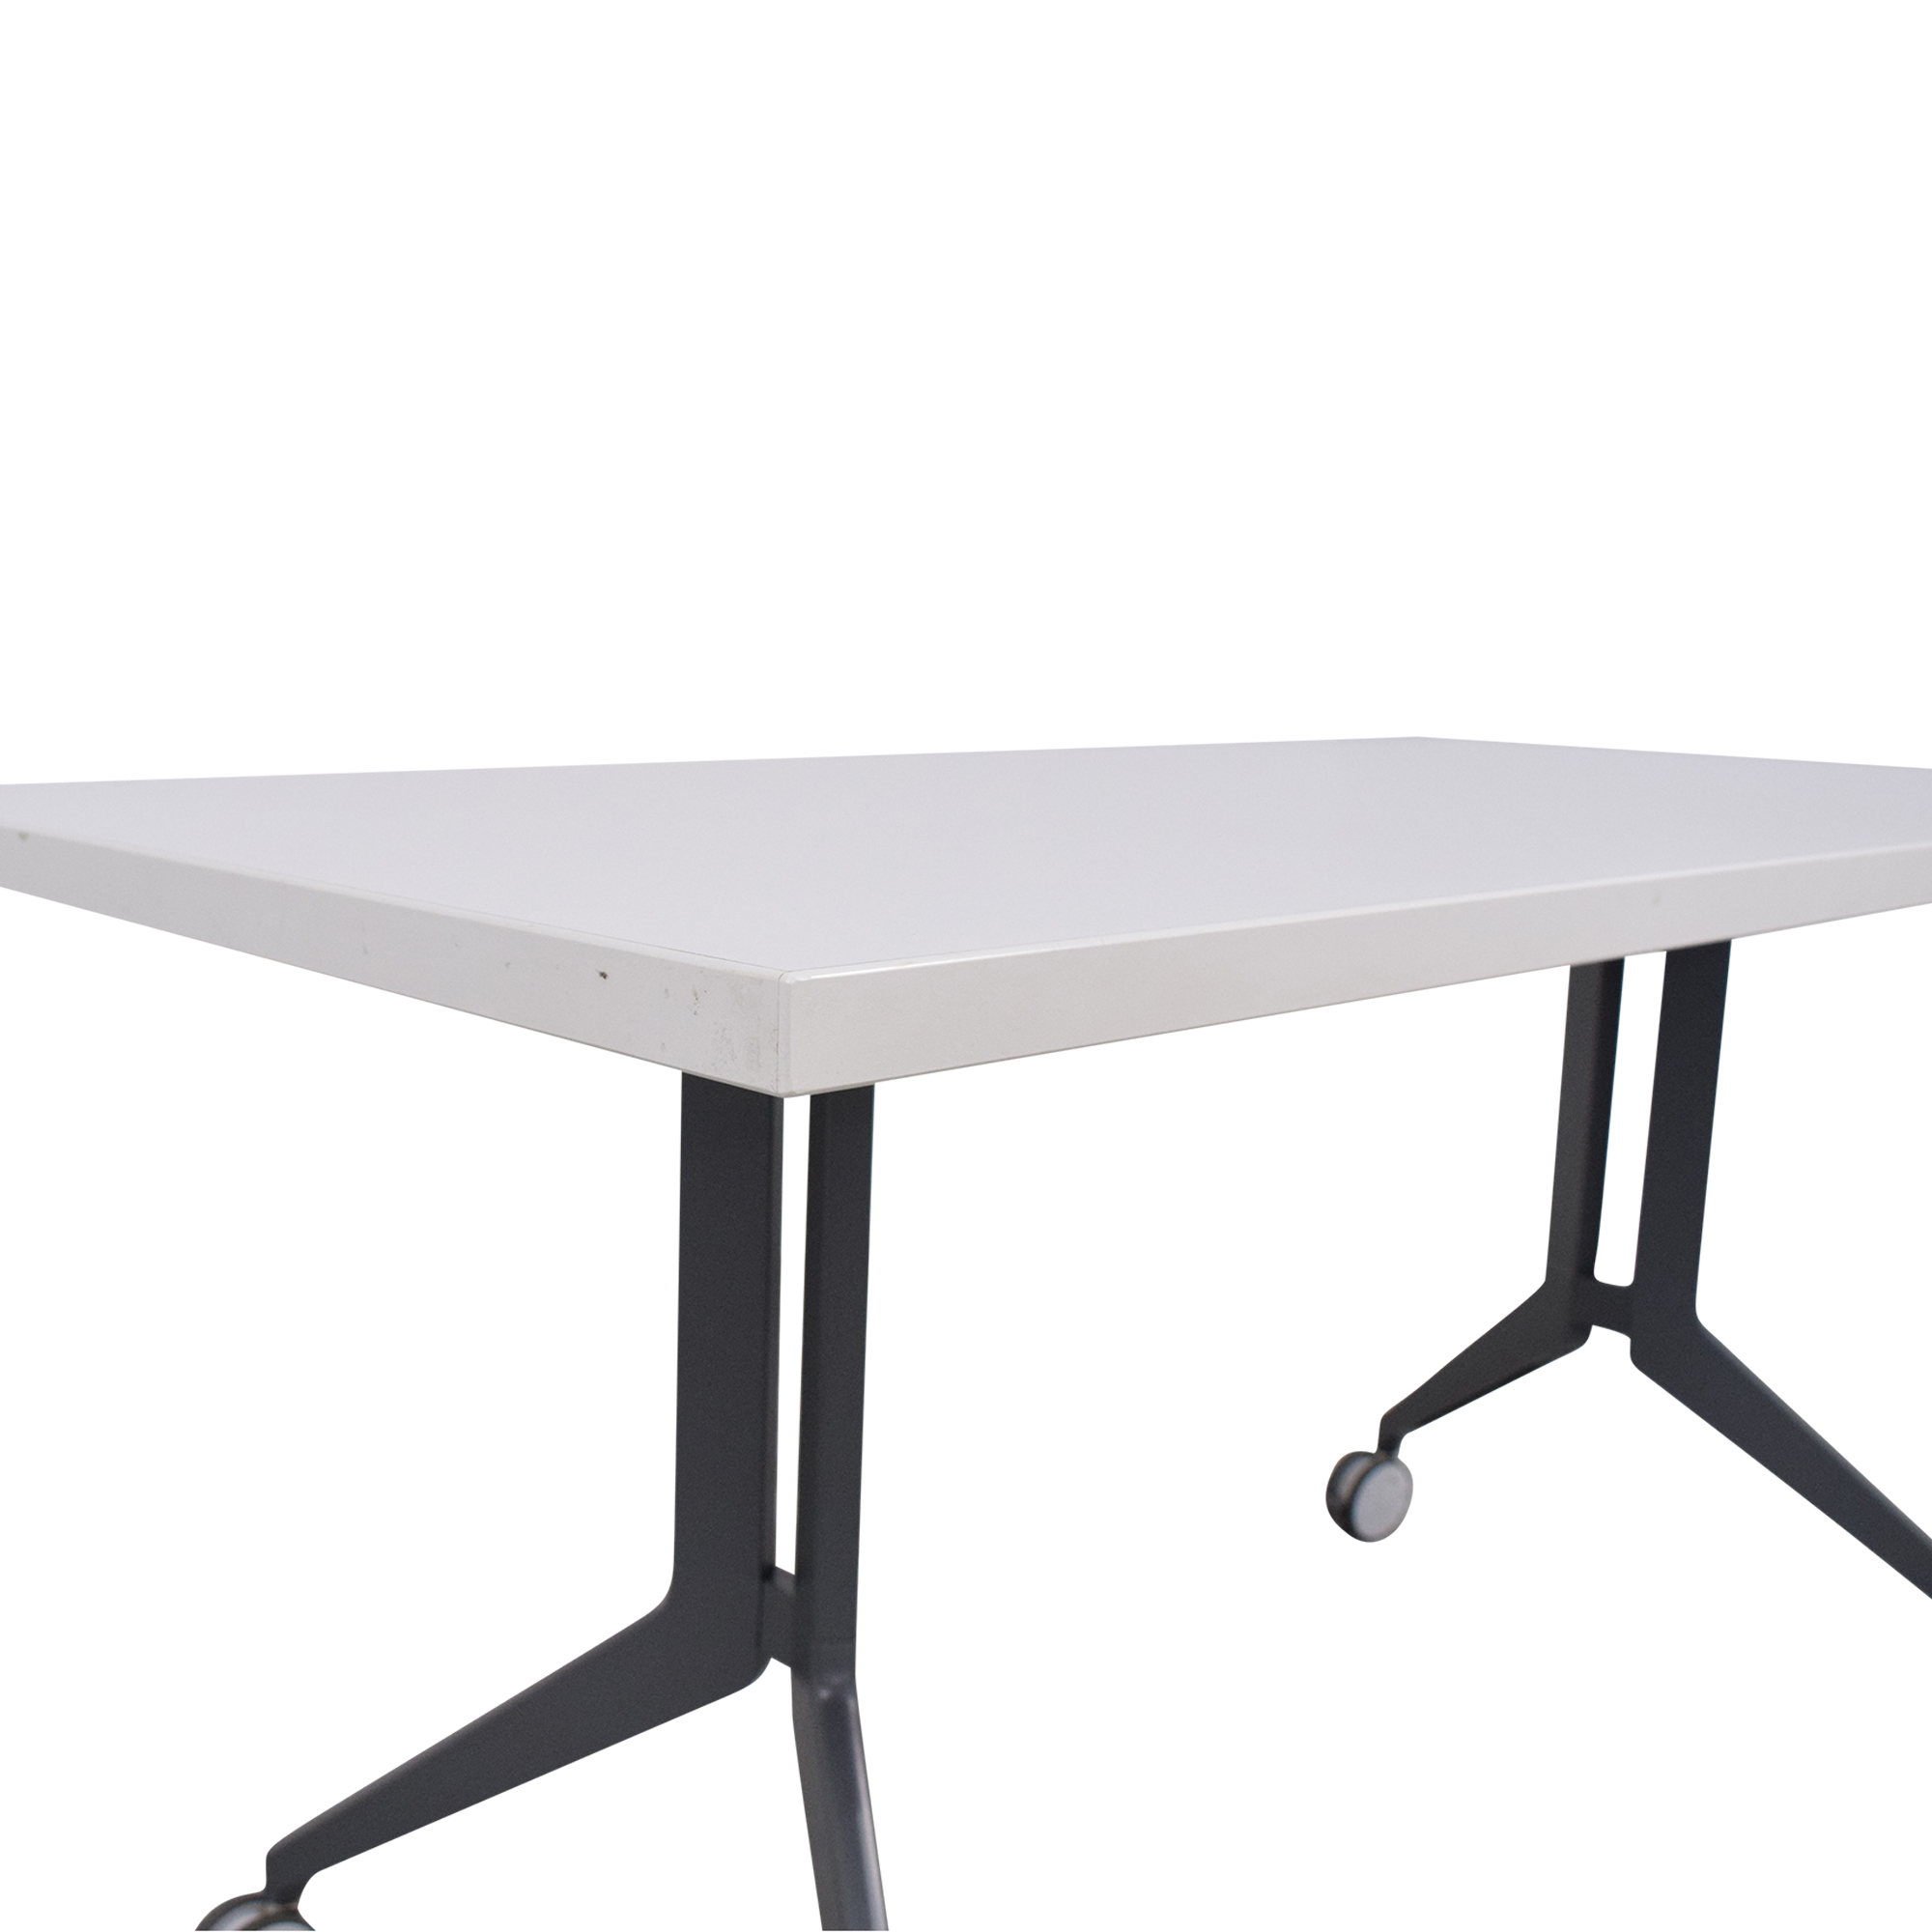 Haworth Haworth Planes Collaborative Desk on sale